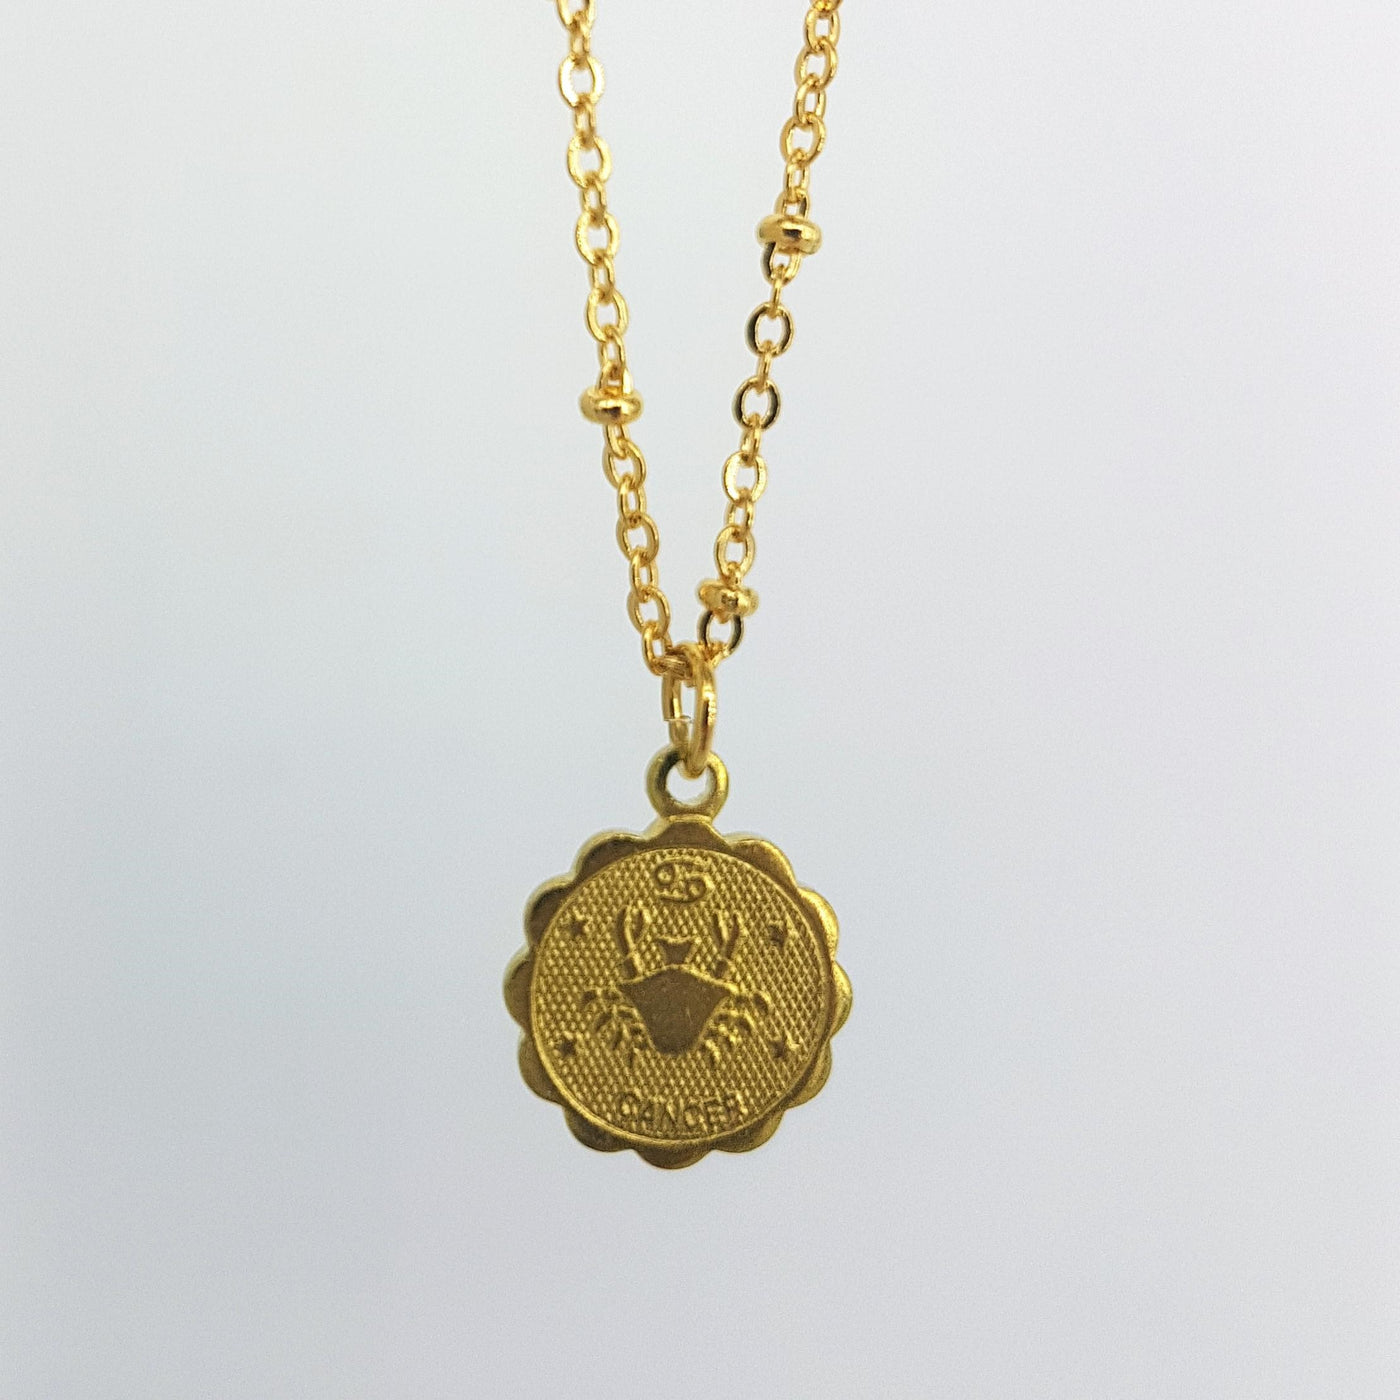 Zodiac Charm Necklace - Cancer